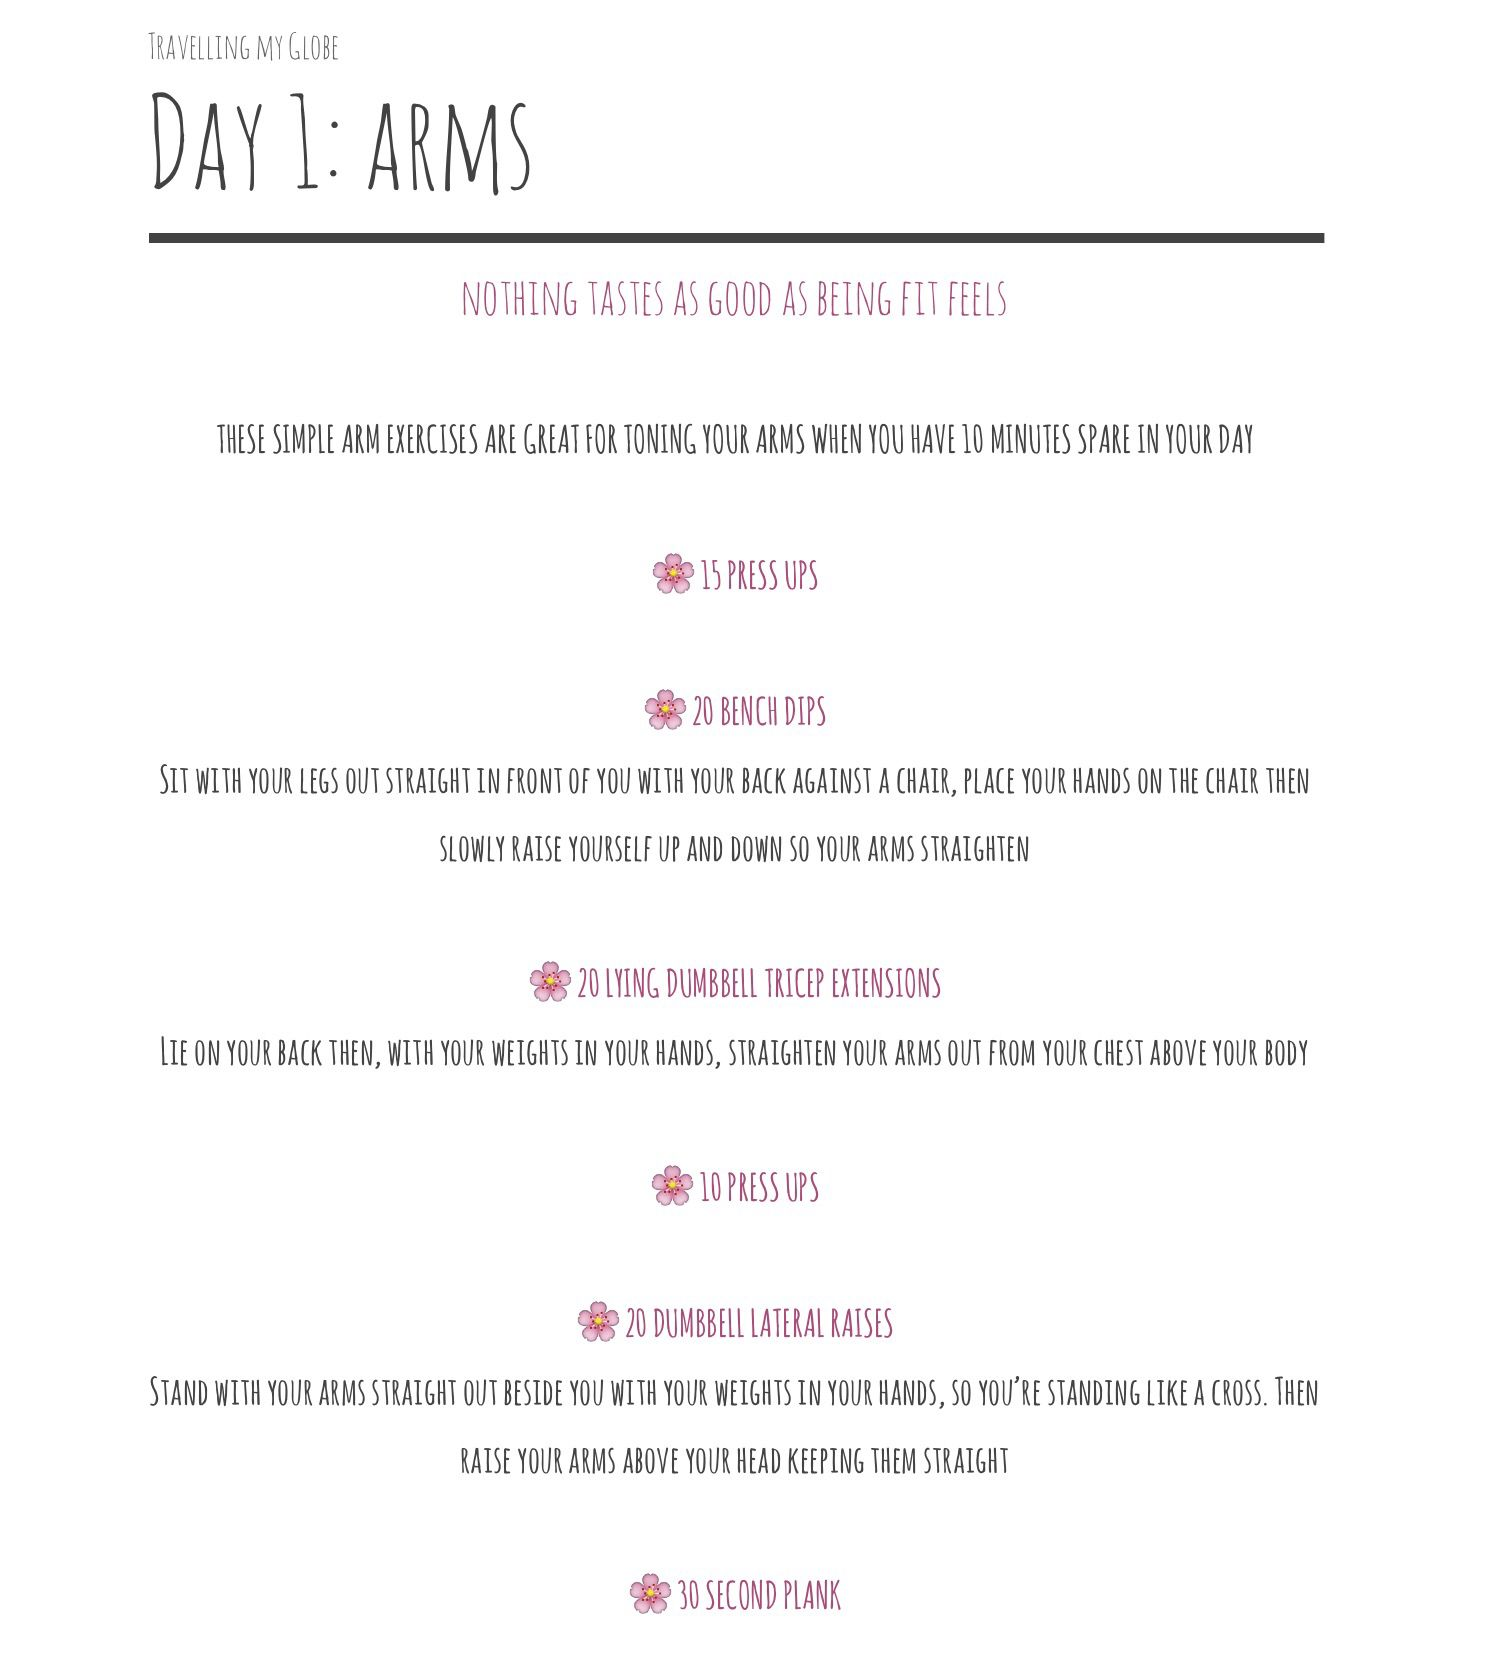 This is a super easy workout for arms. Click the link below to get your own free printable version!   https://docs.google.com/document/d/1w3OgV3xpdX-LXG0KXRhG6W_ykgHlVOH4jKcCH8mr3EQ